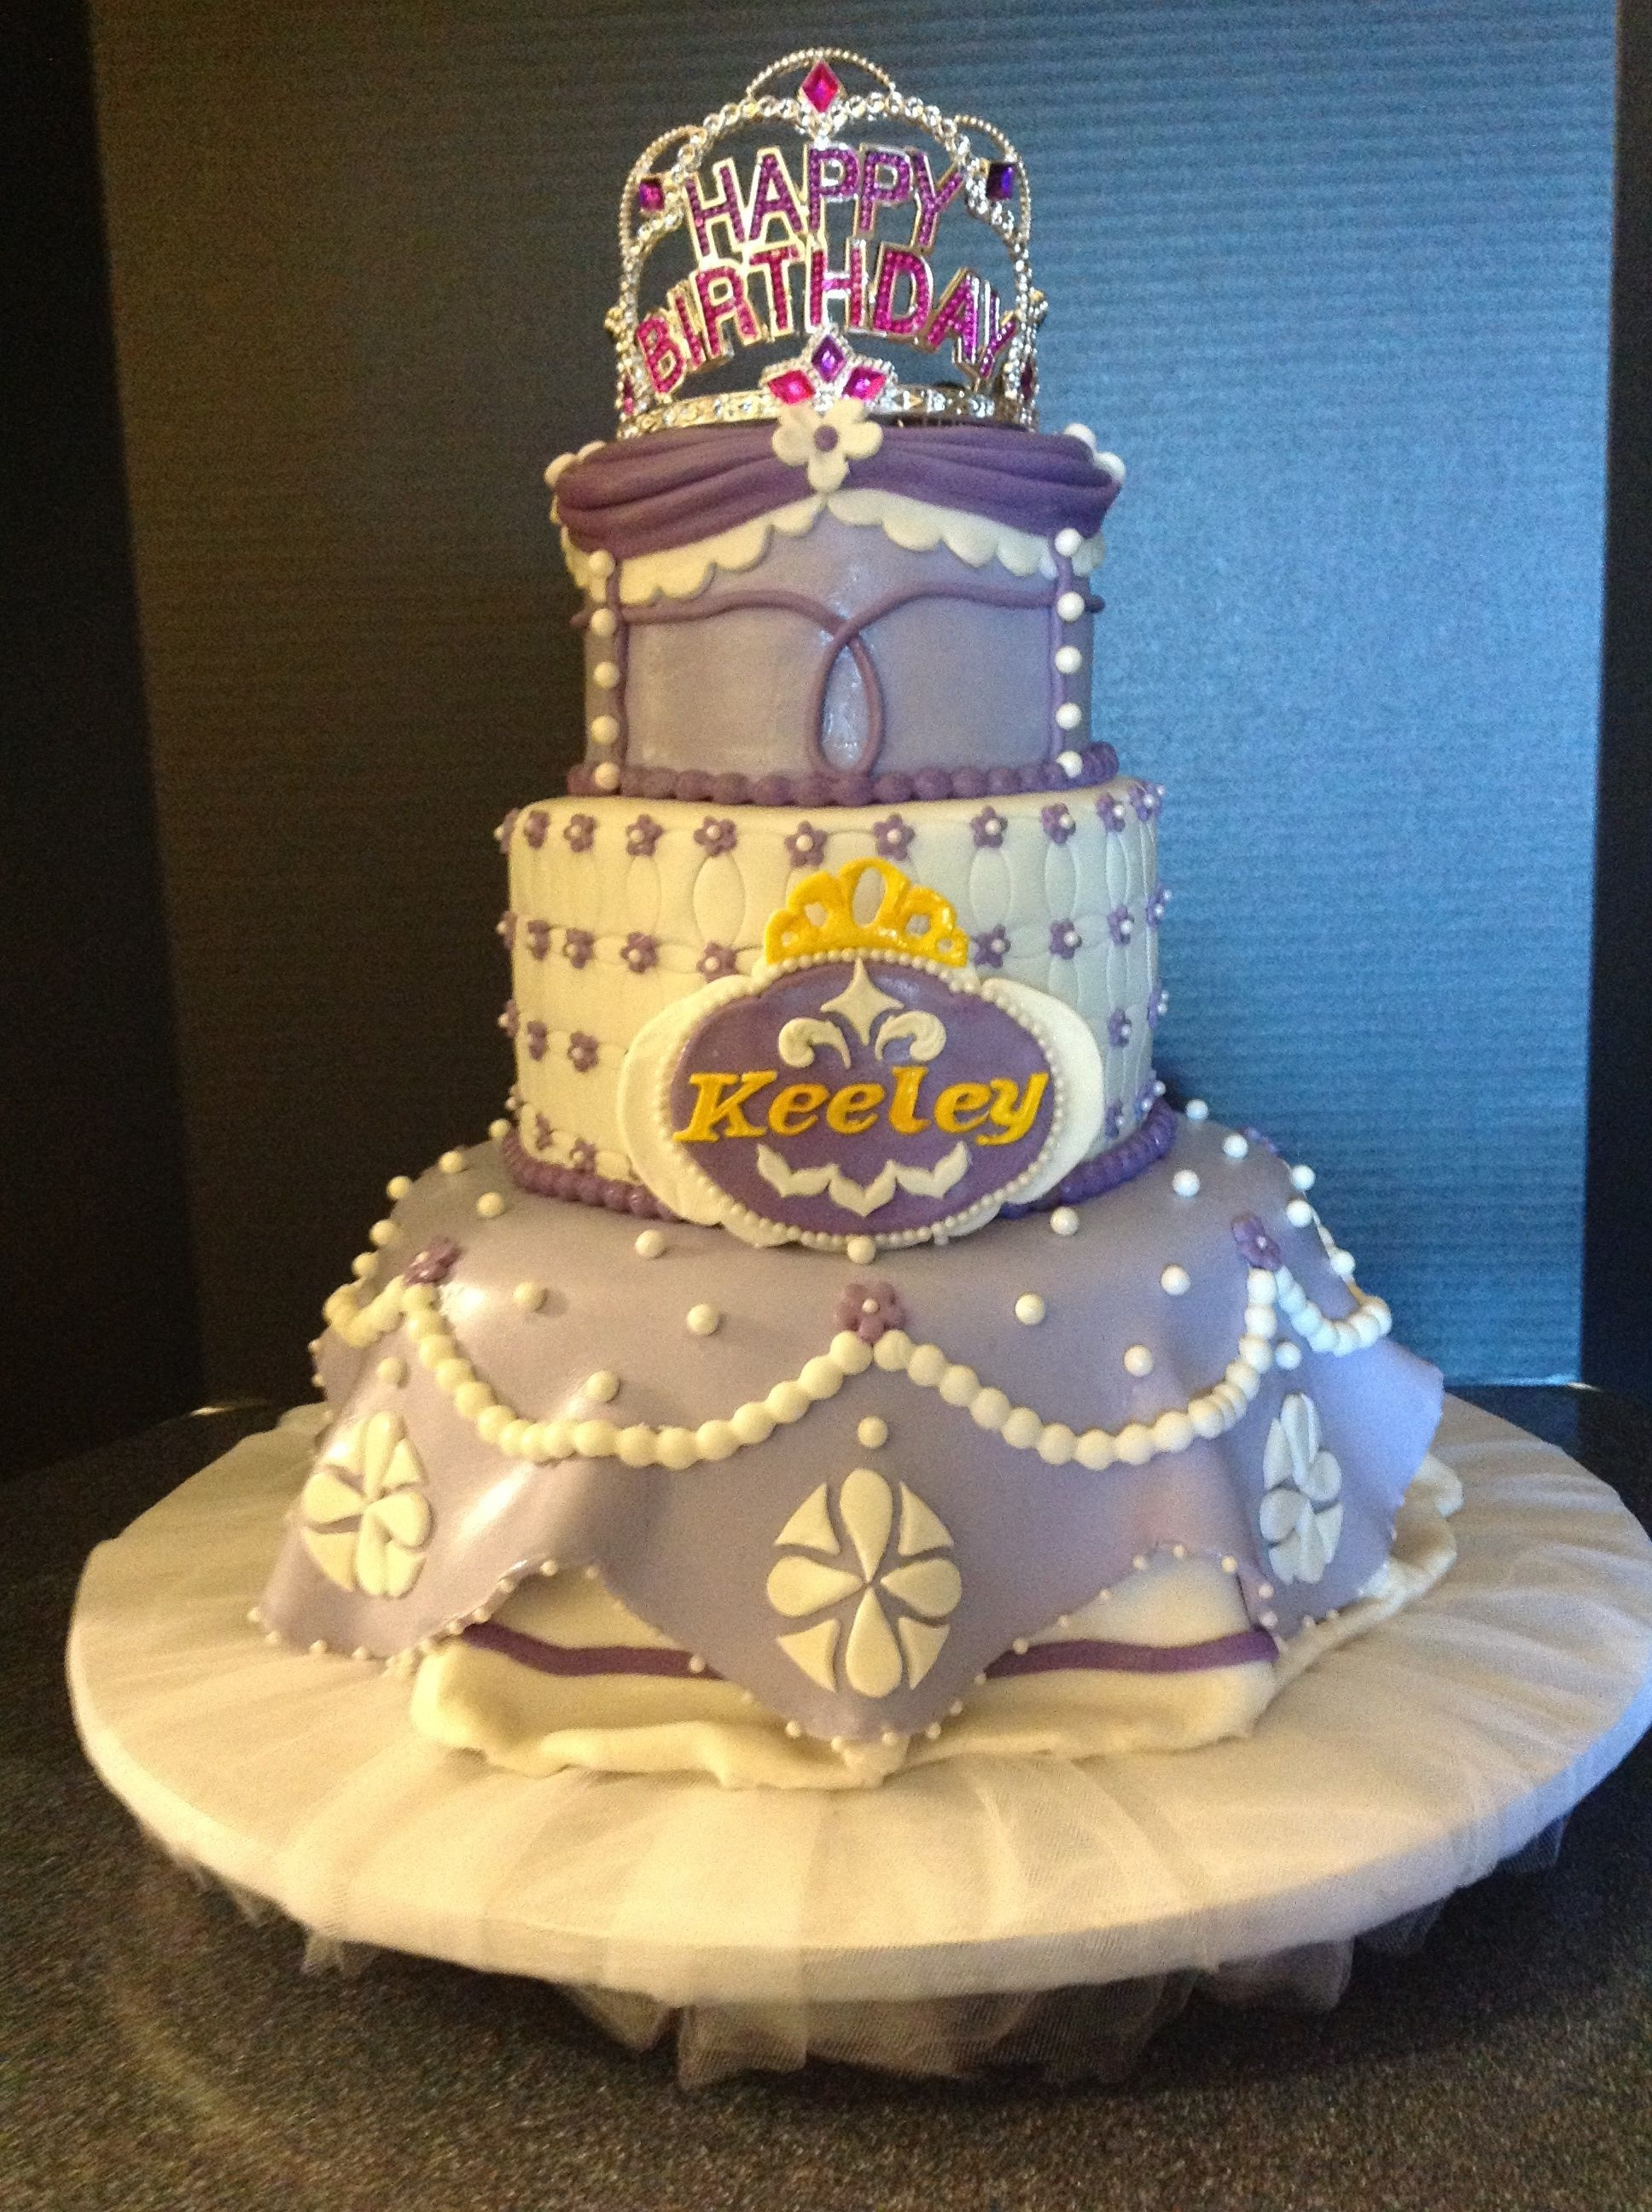 Sofia The First Birthday Cake Sofia the first birthday cake.